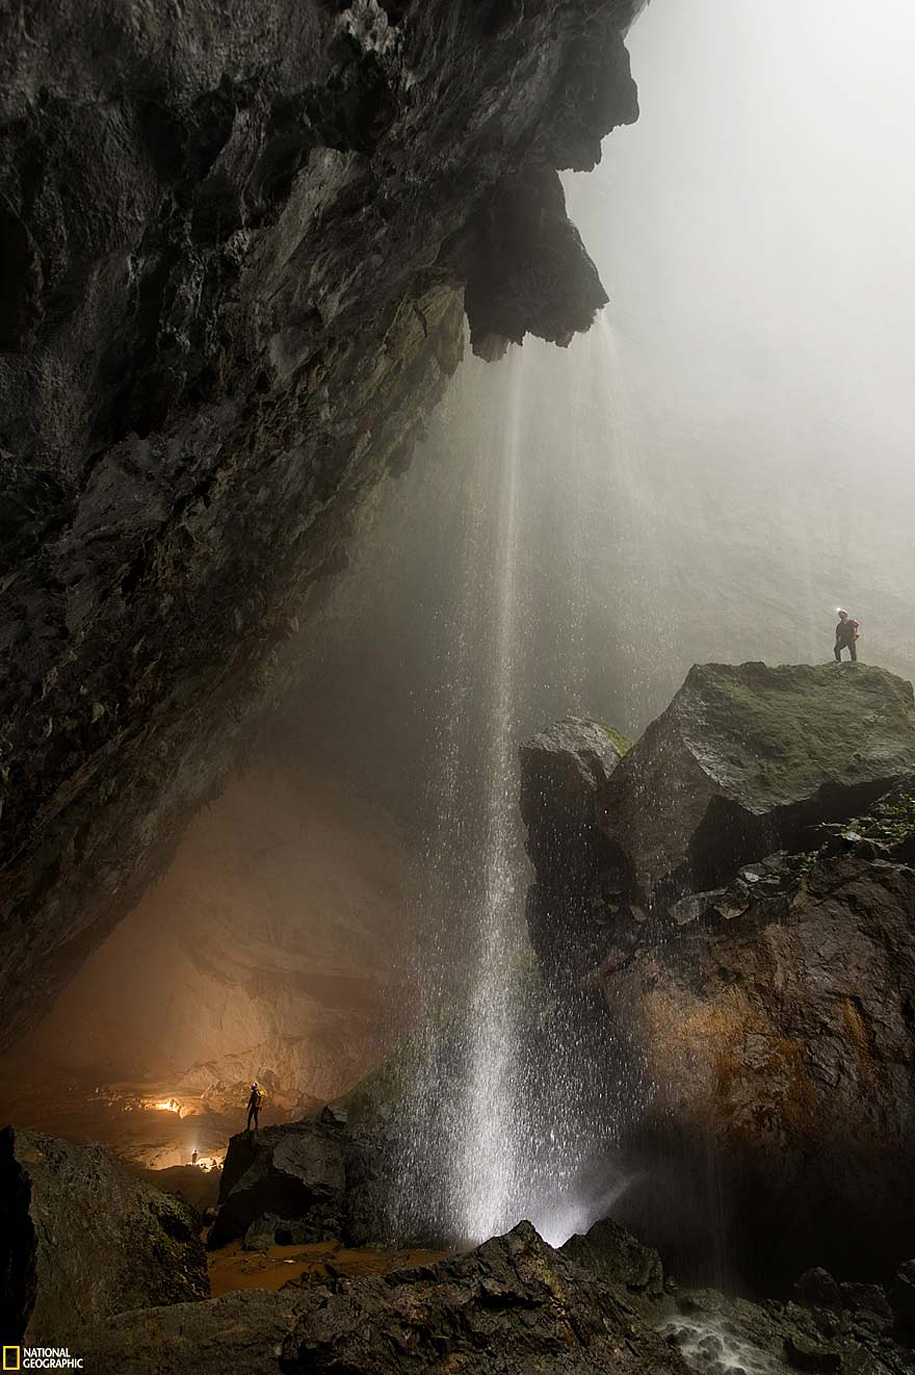 worlds-largest-cave-hang-son-doong-vietnam-5